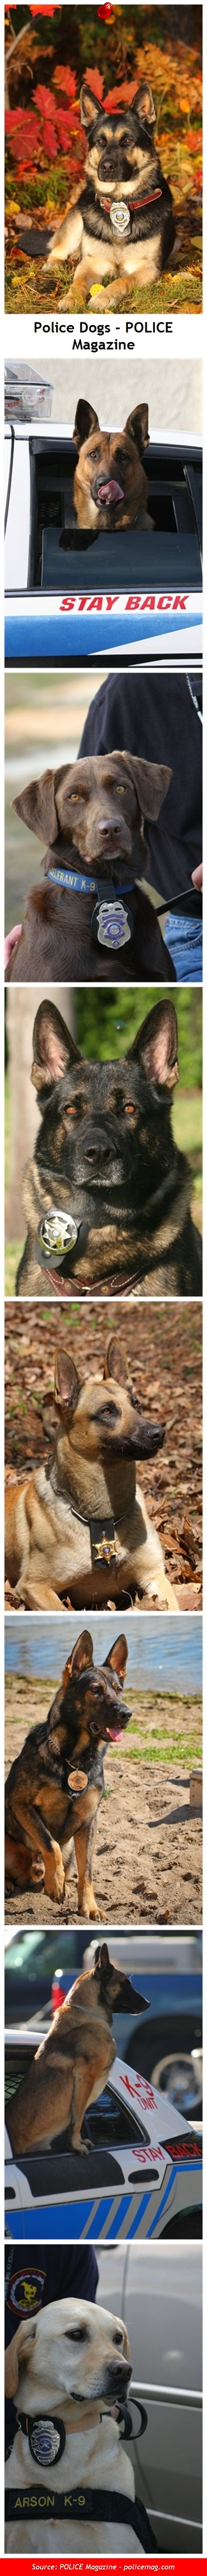 Police dog sideshow from police and Sheriff department K-9 units. POLICE Magazine - www.policemag.com